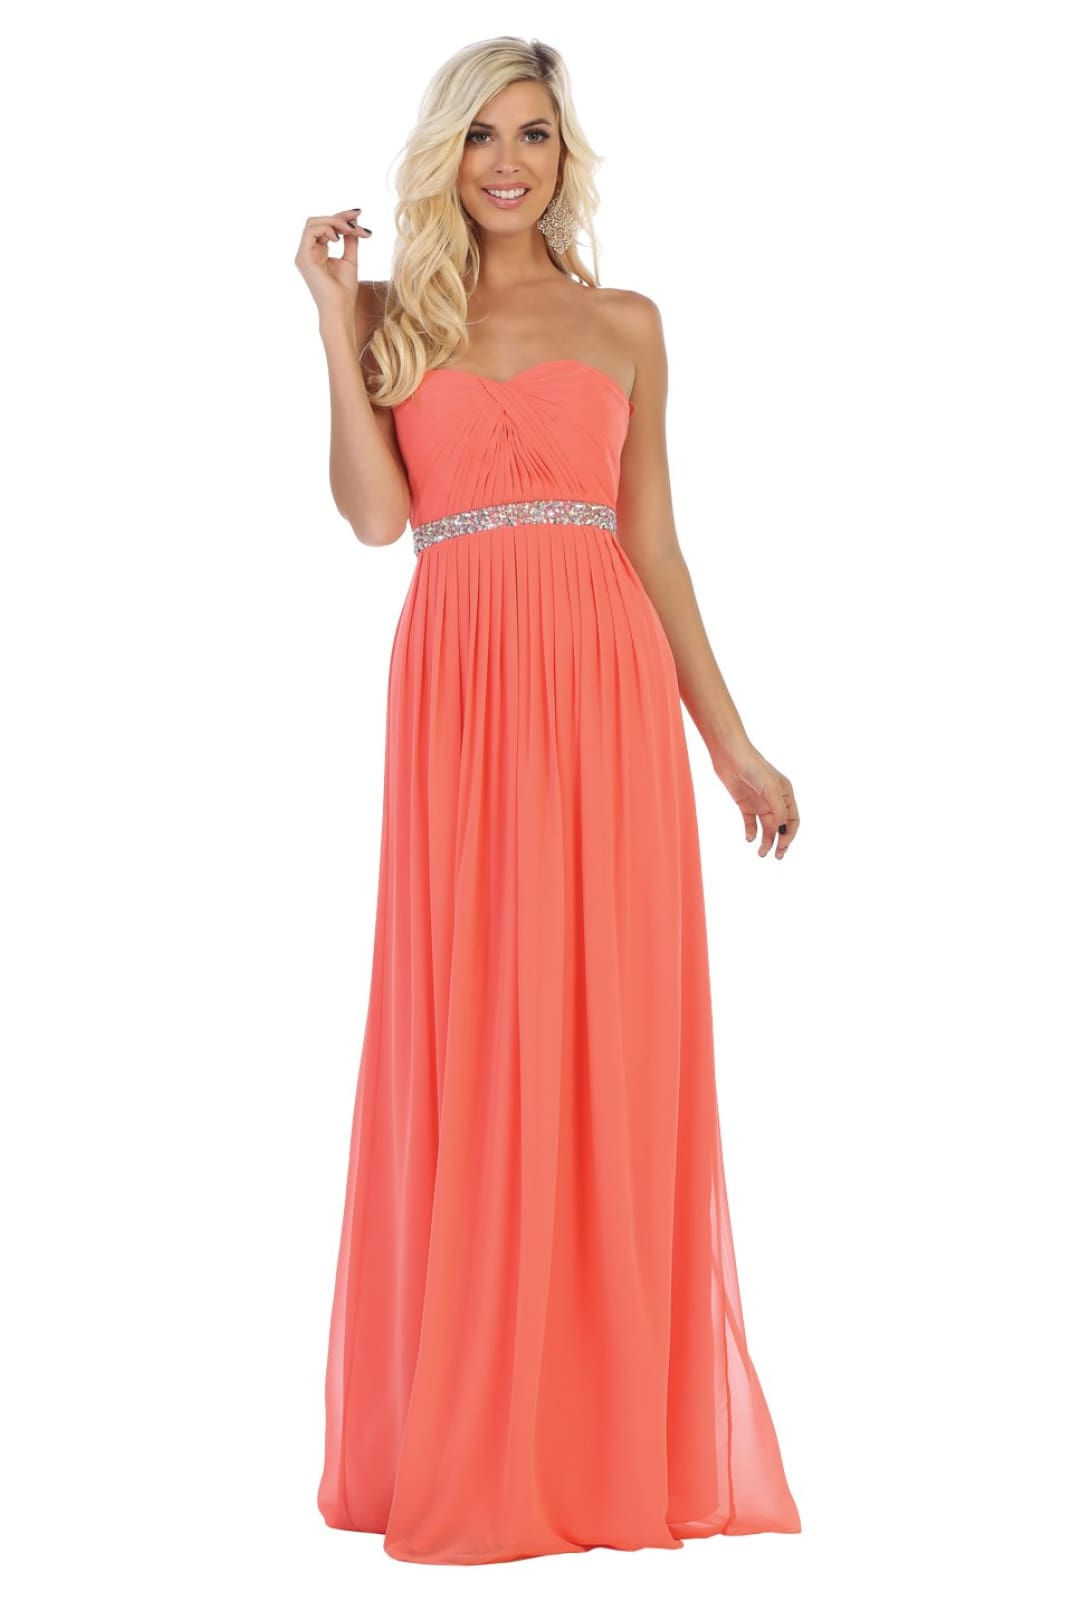 Classy Bridesmaids Dress - Coral / 6